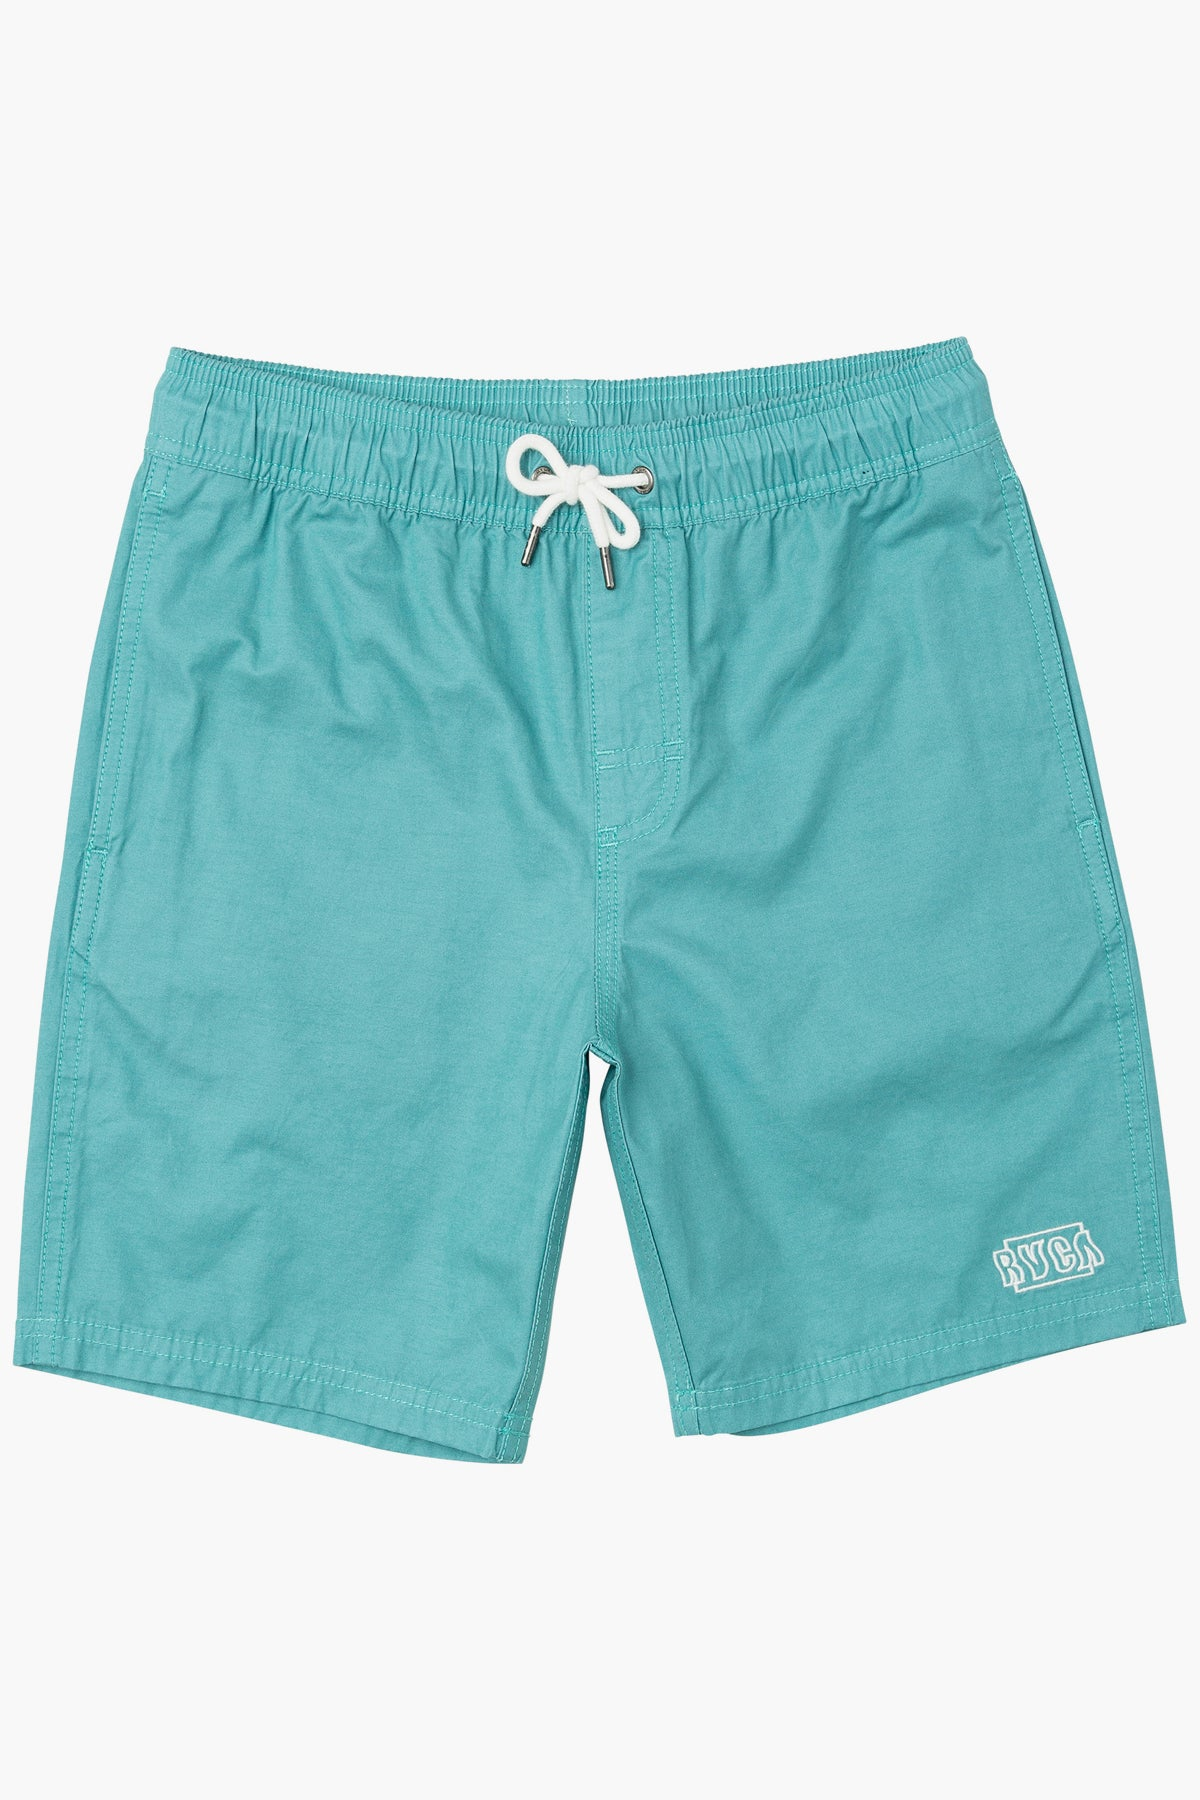 RVCA Opposites Boys Swim Short - Bermuda Blue